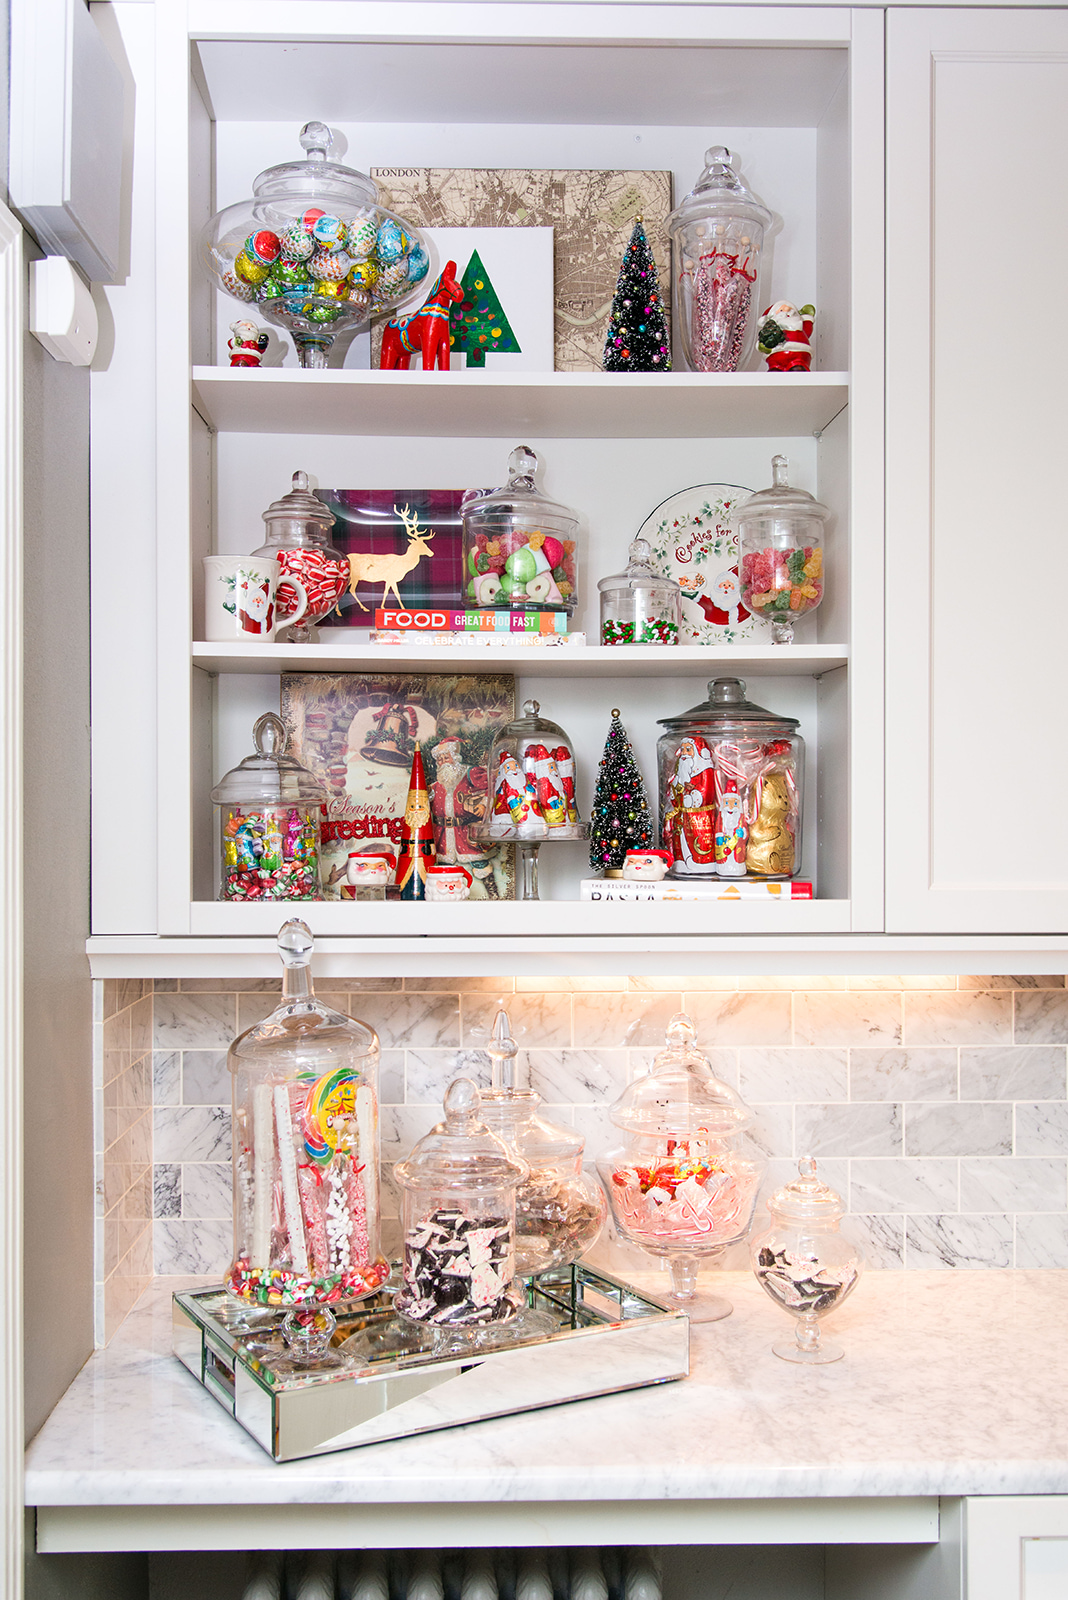 I love a vintage/eclectic aesthetic when it comes to Christmas decor. It's just so nostalgic.